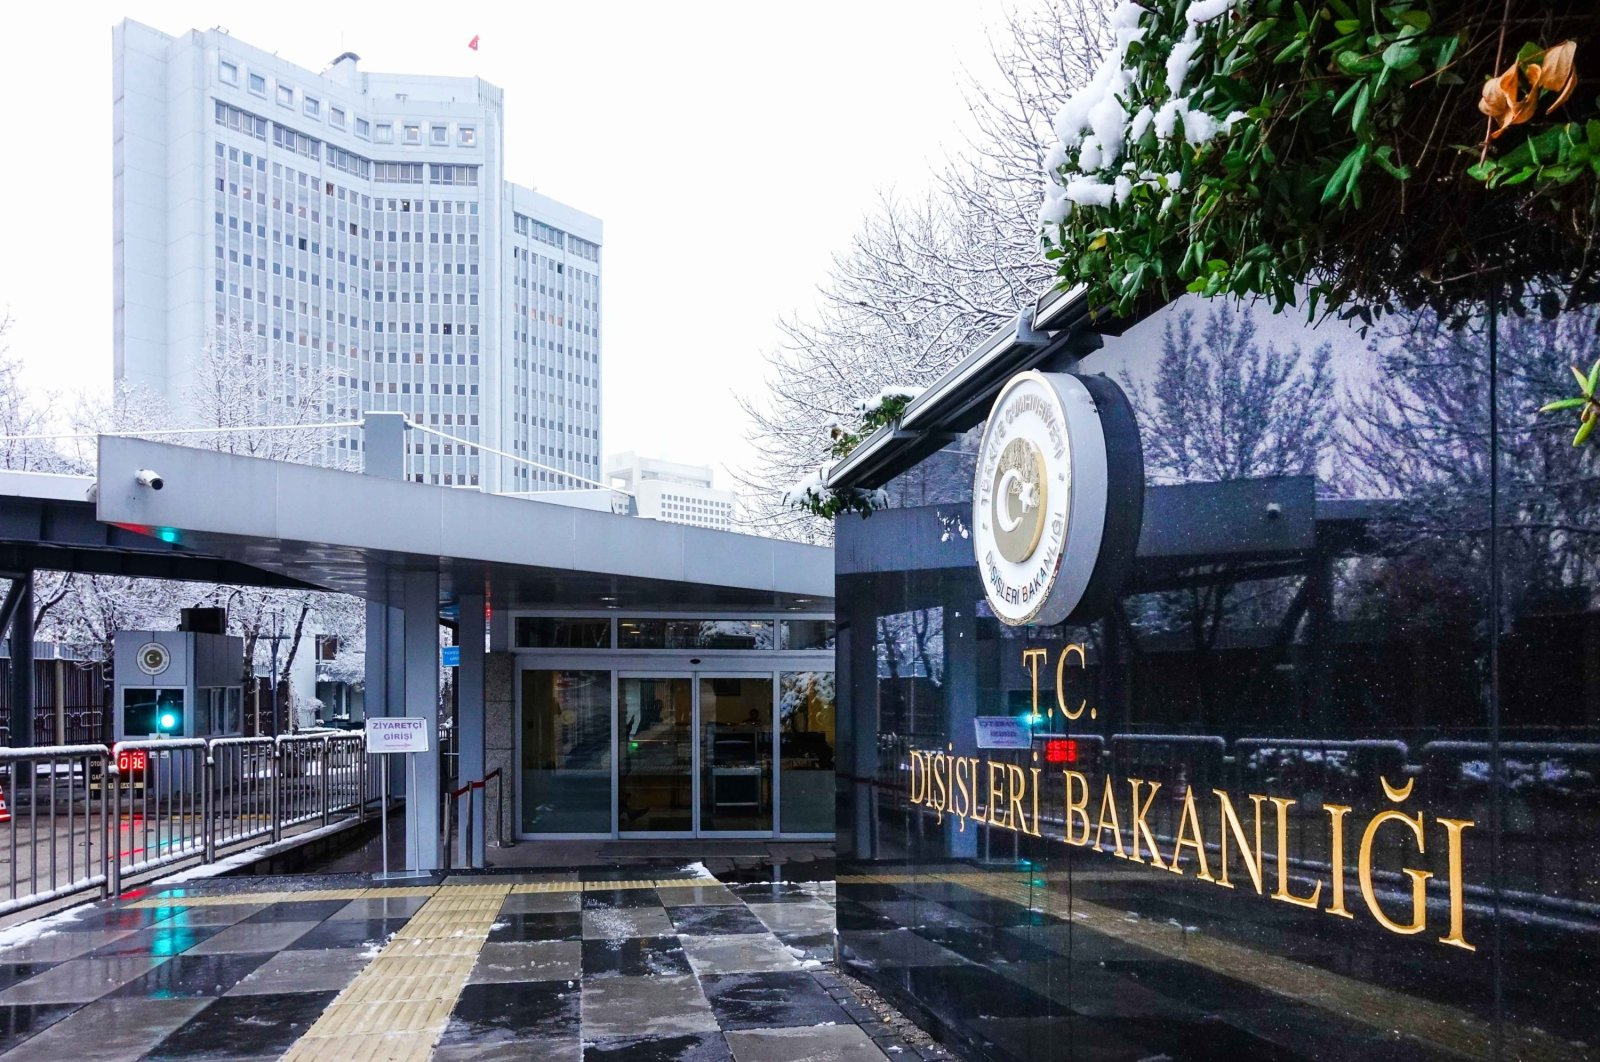 Ministry of Foreign Affairs building in Ankara, Turkey, Dec. 22, 2018. (Getty Images)